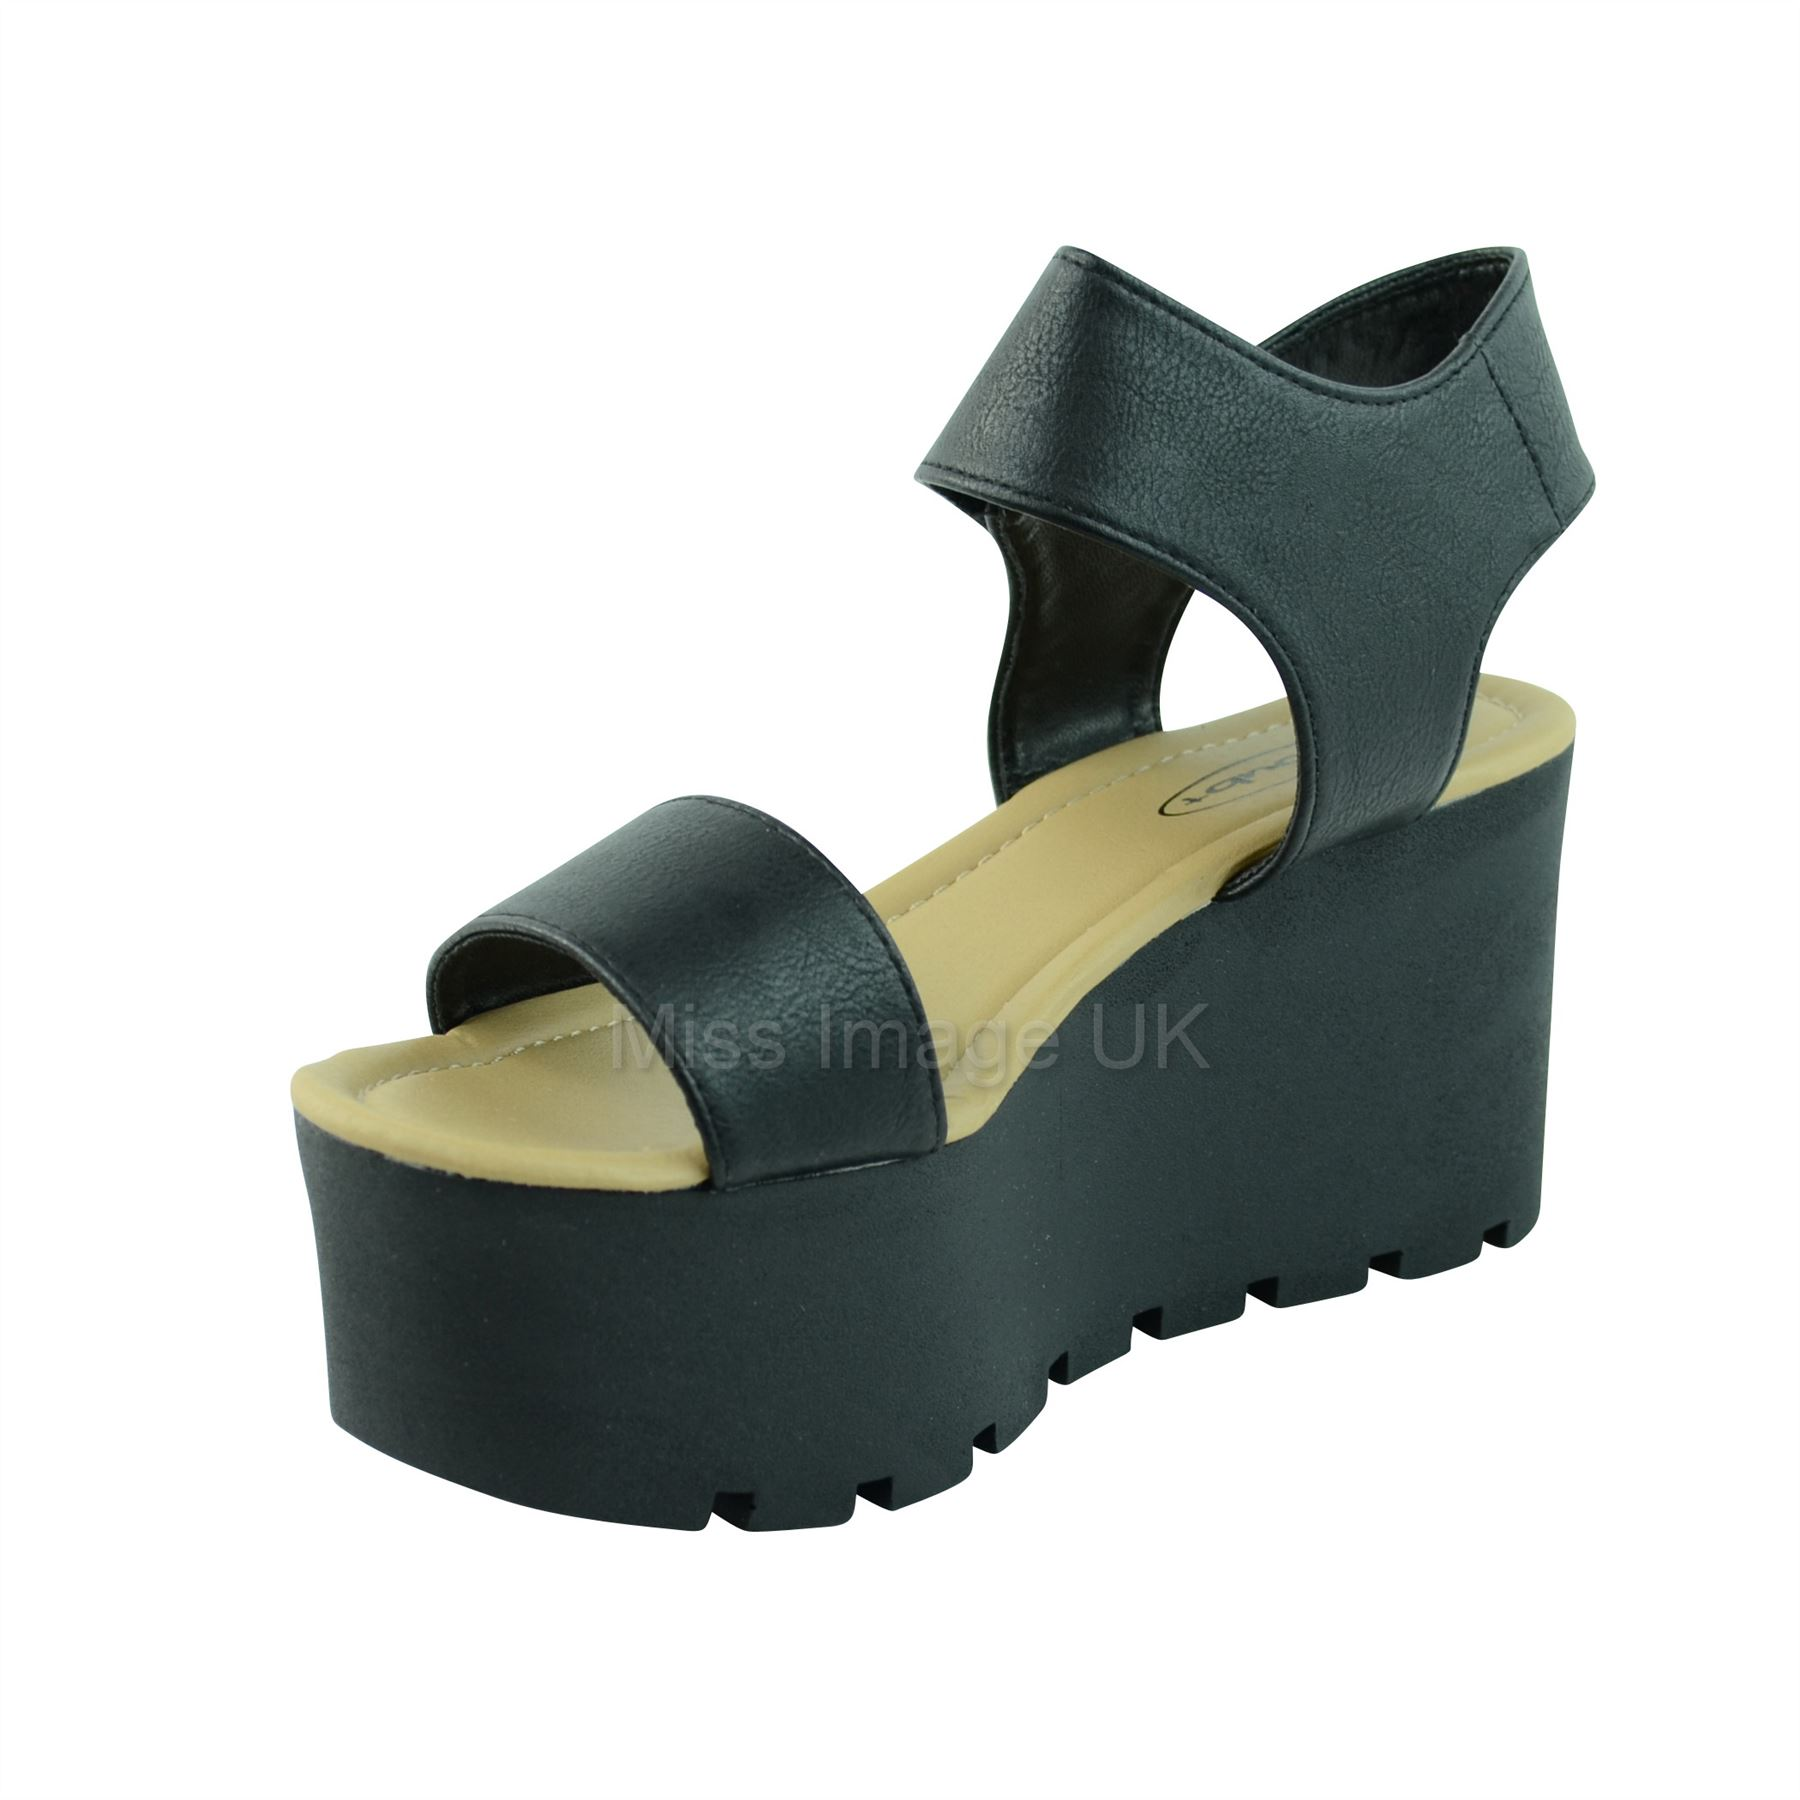 LADIES-WOMENS-CHUNKY-SOLE-PLATFORM-SUMMER-SANDALS-WEDGES-PLATFORMS-SHOE-SIZE